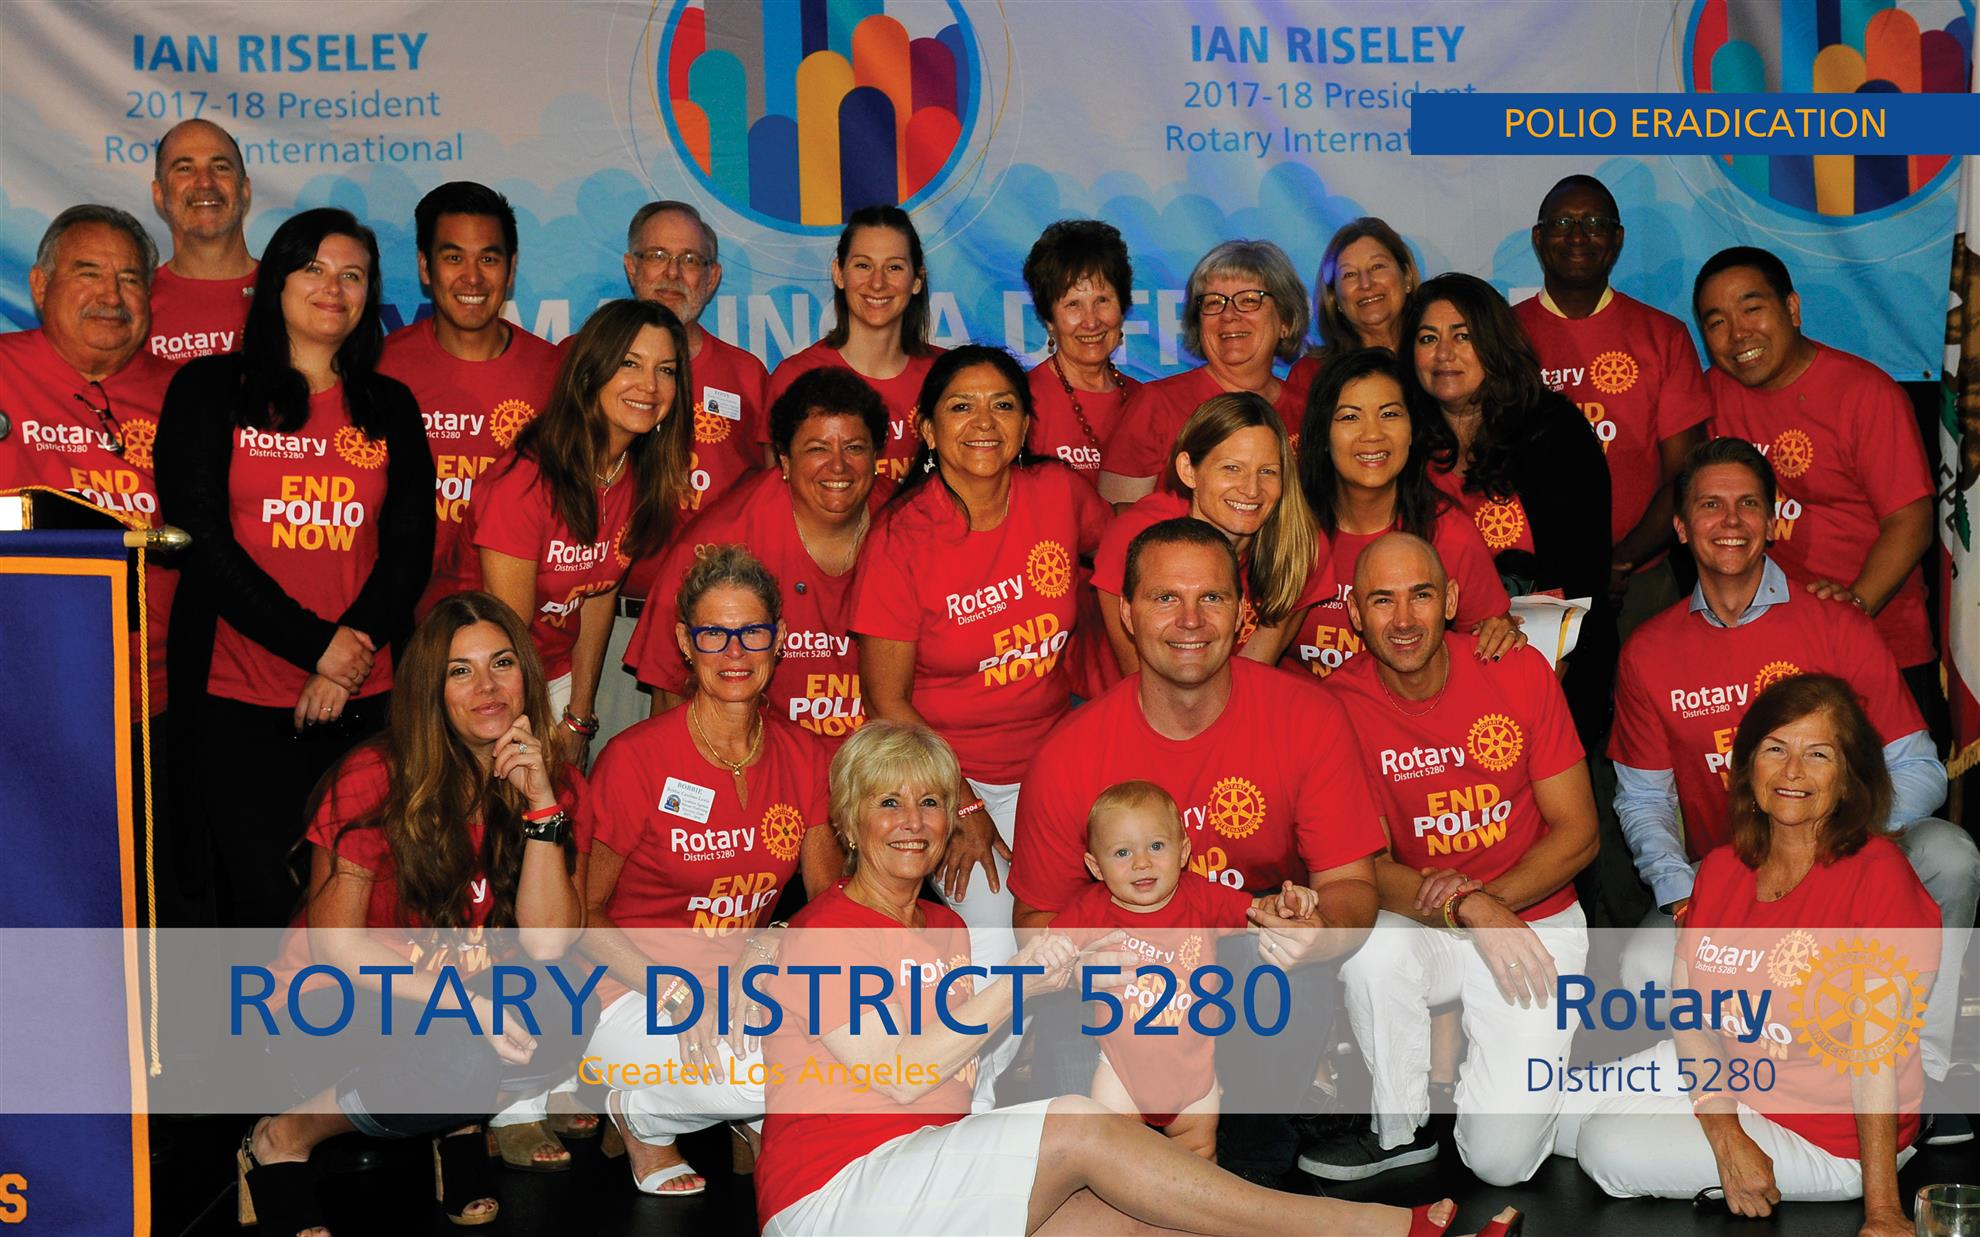 Rotary District 5280